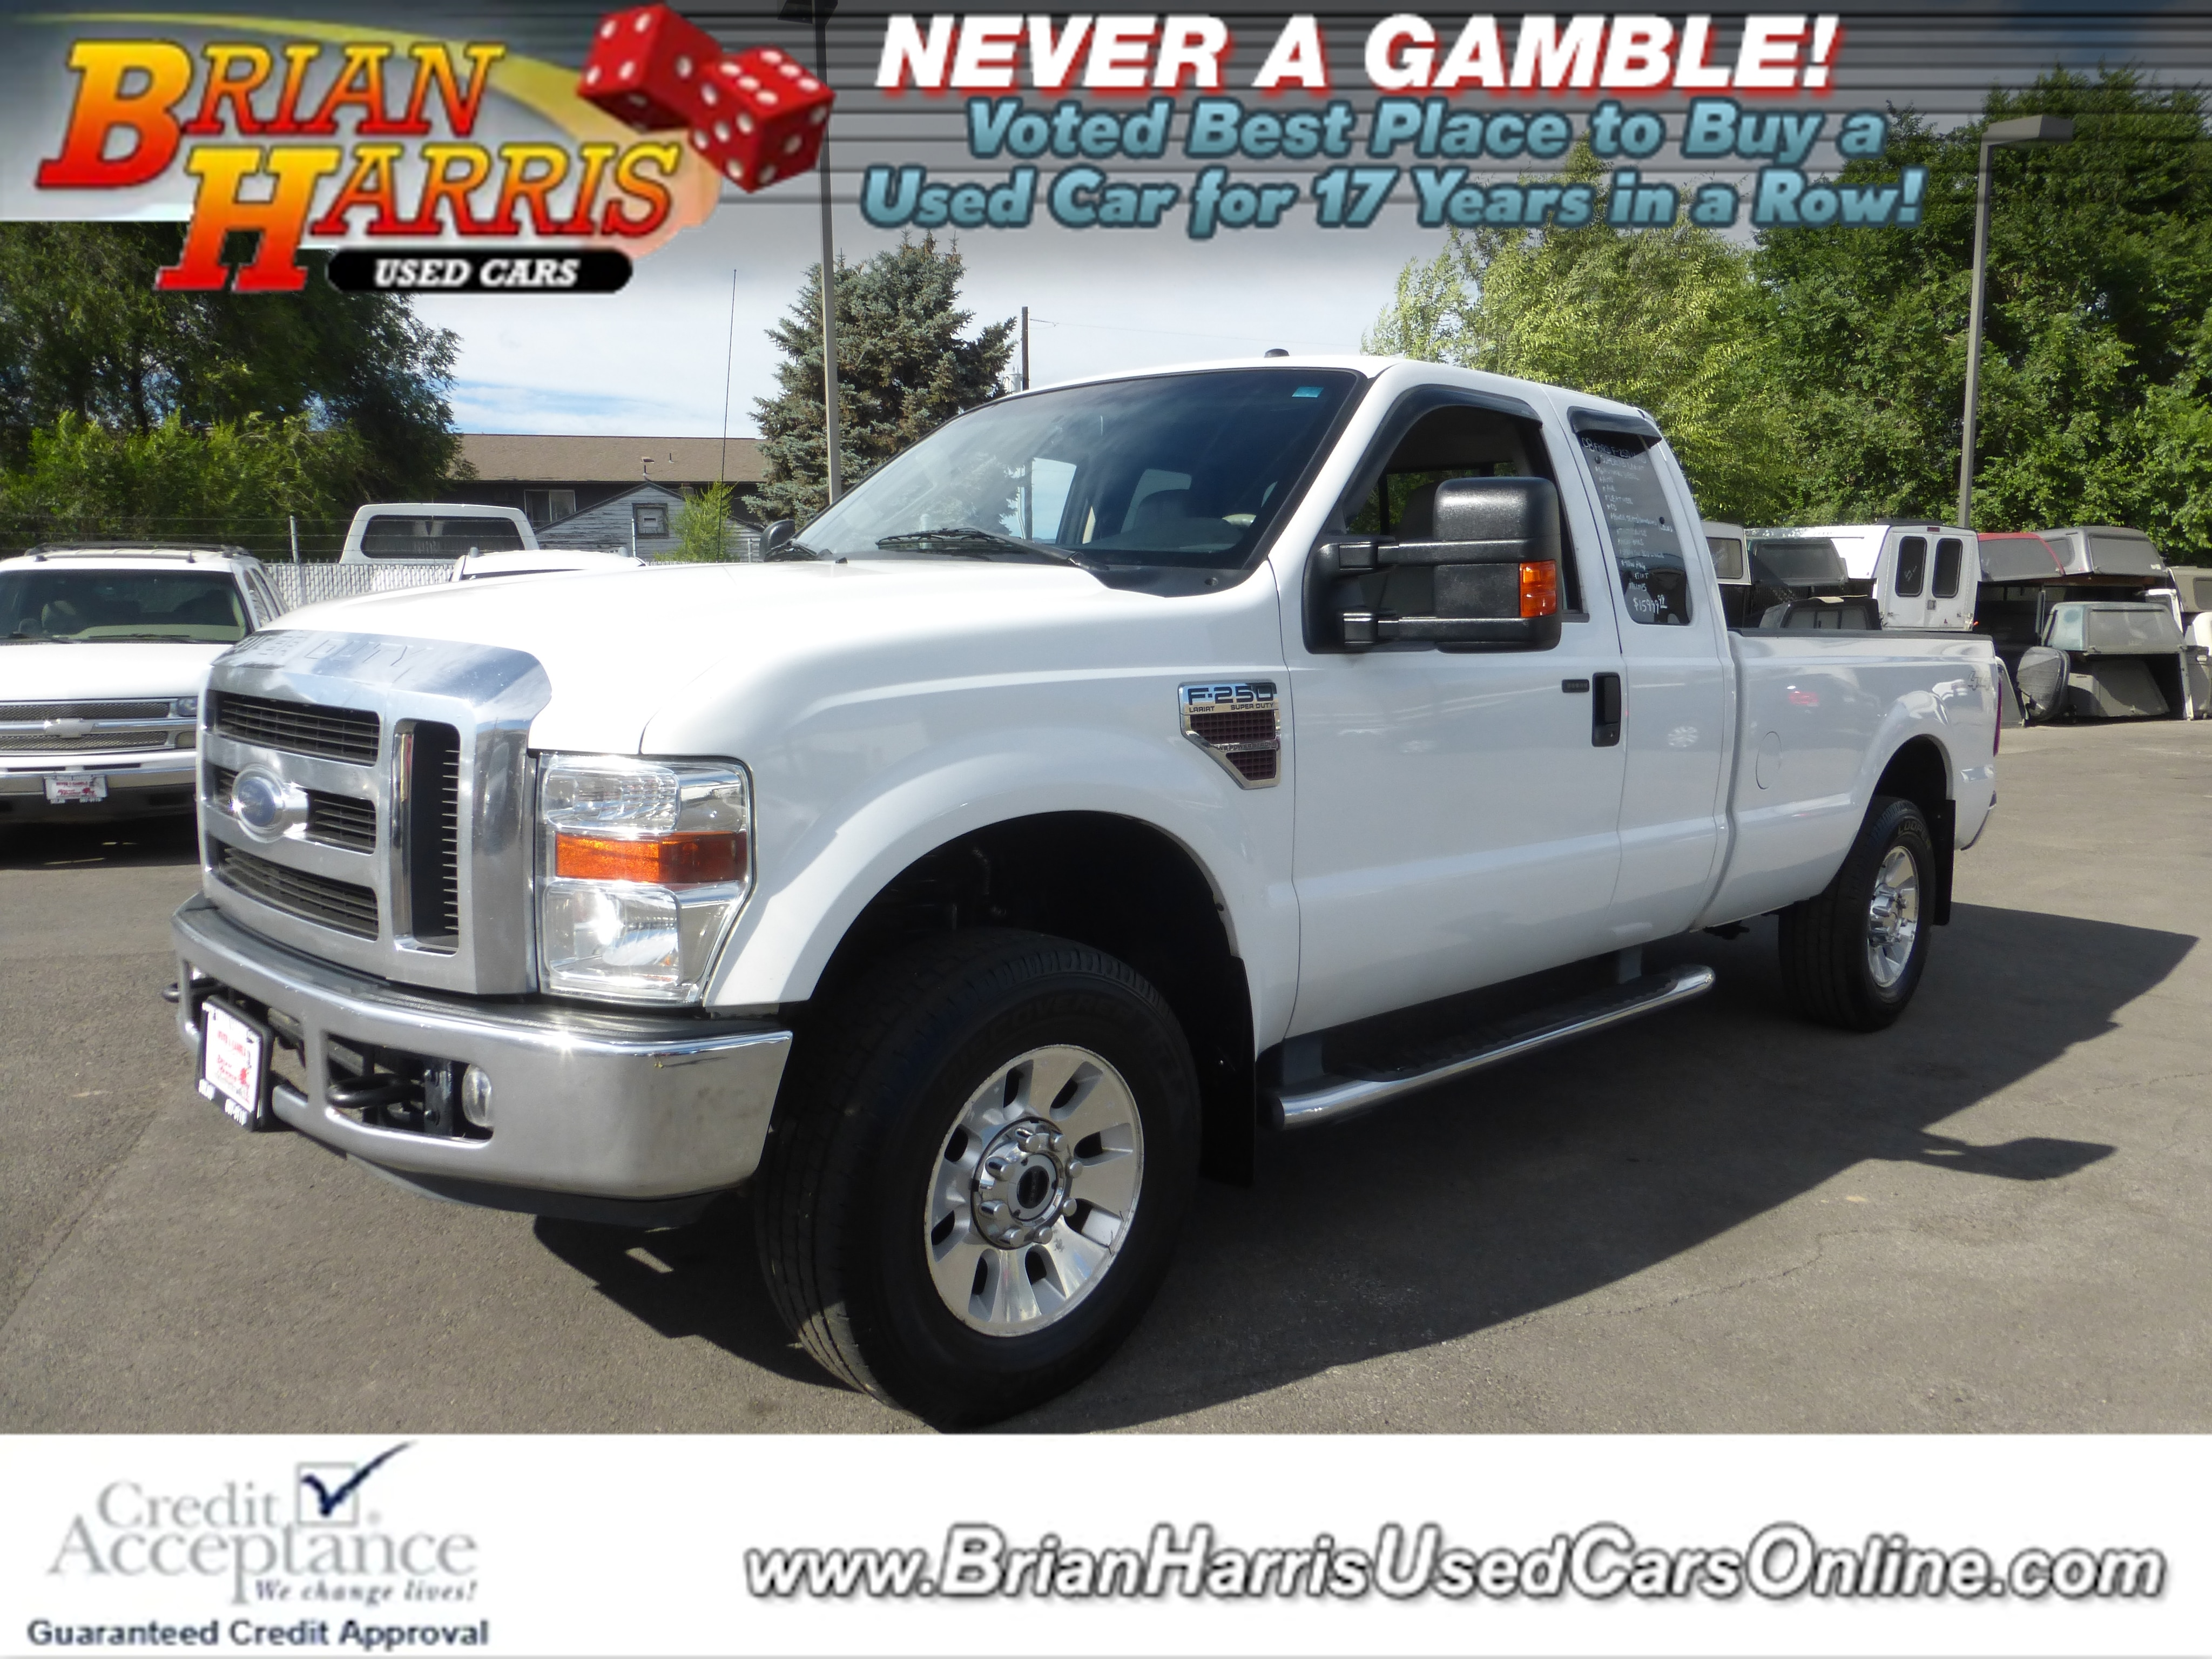 Used 2008 Ford F-250 For Sale at Brian Harris Used Cars